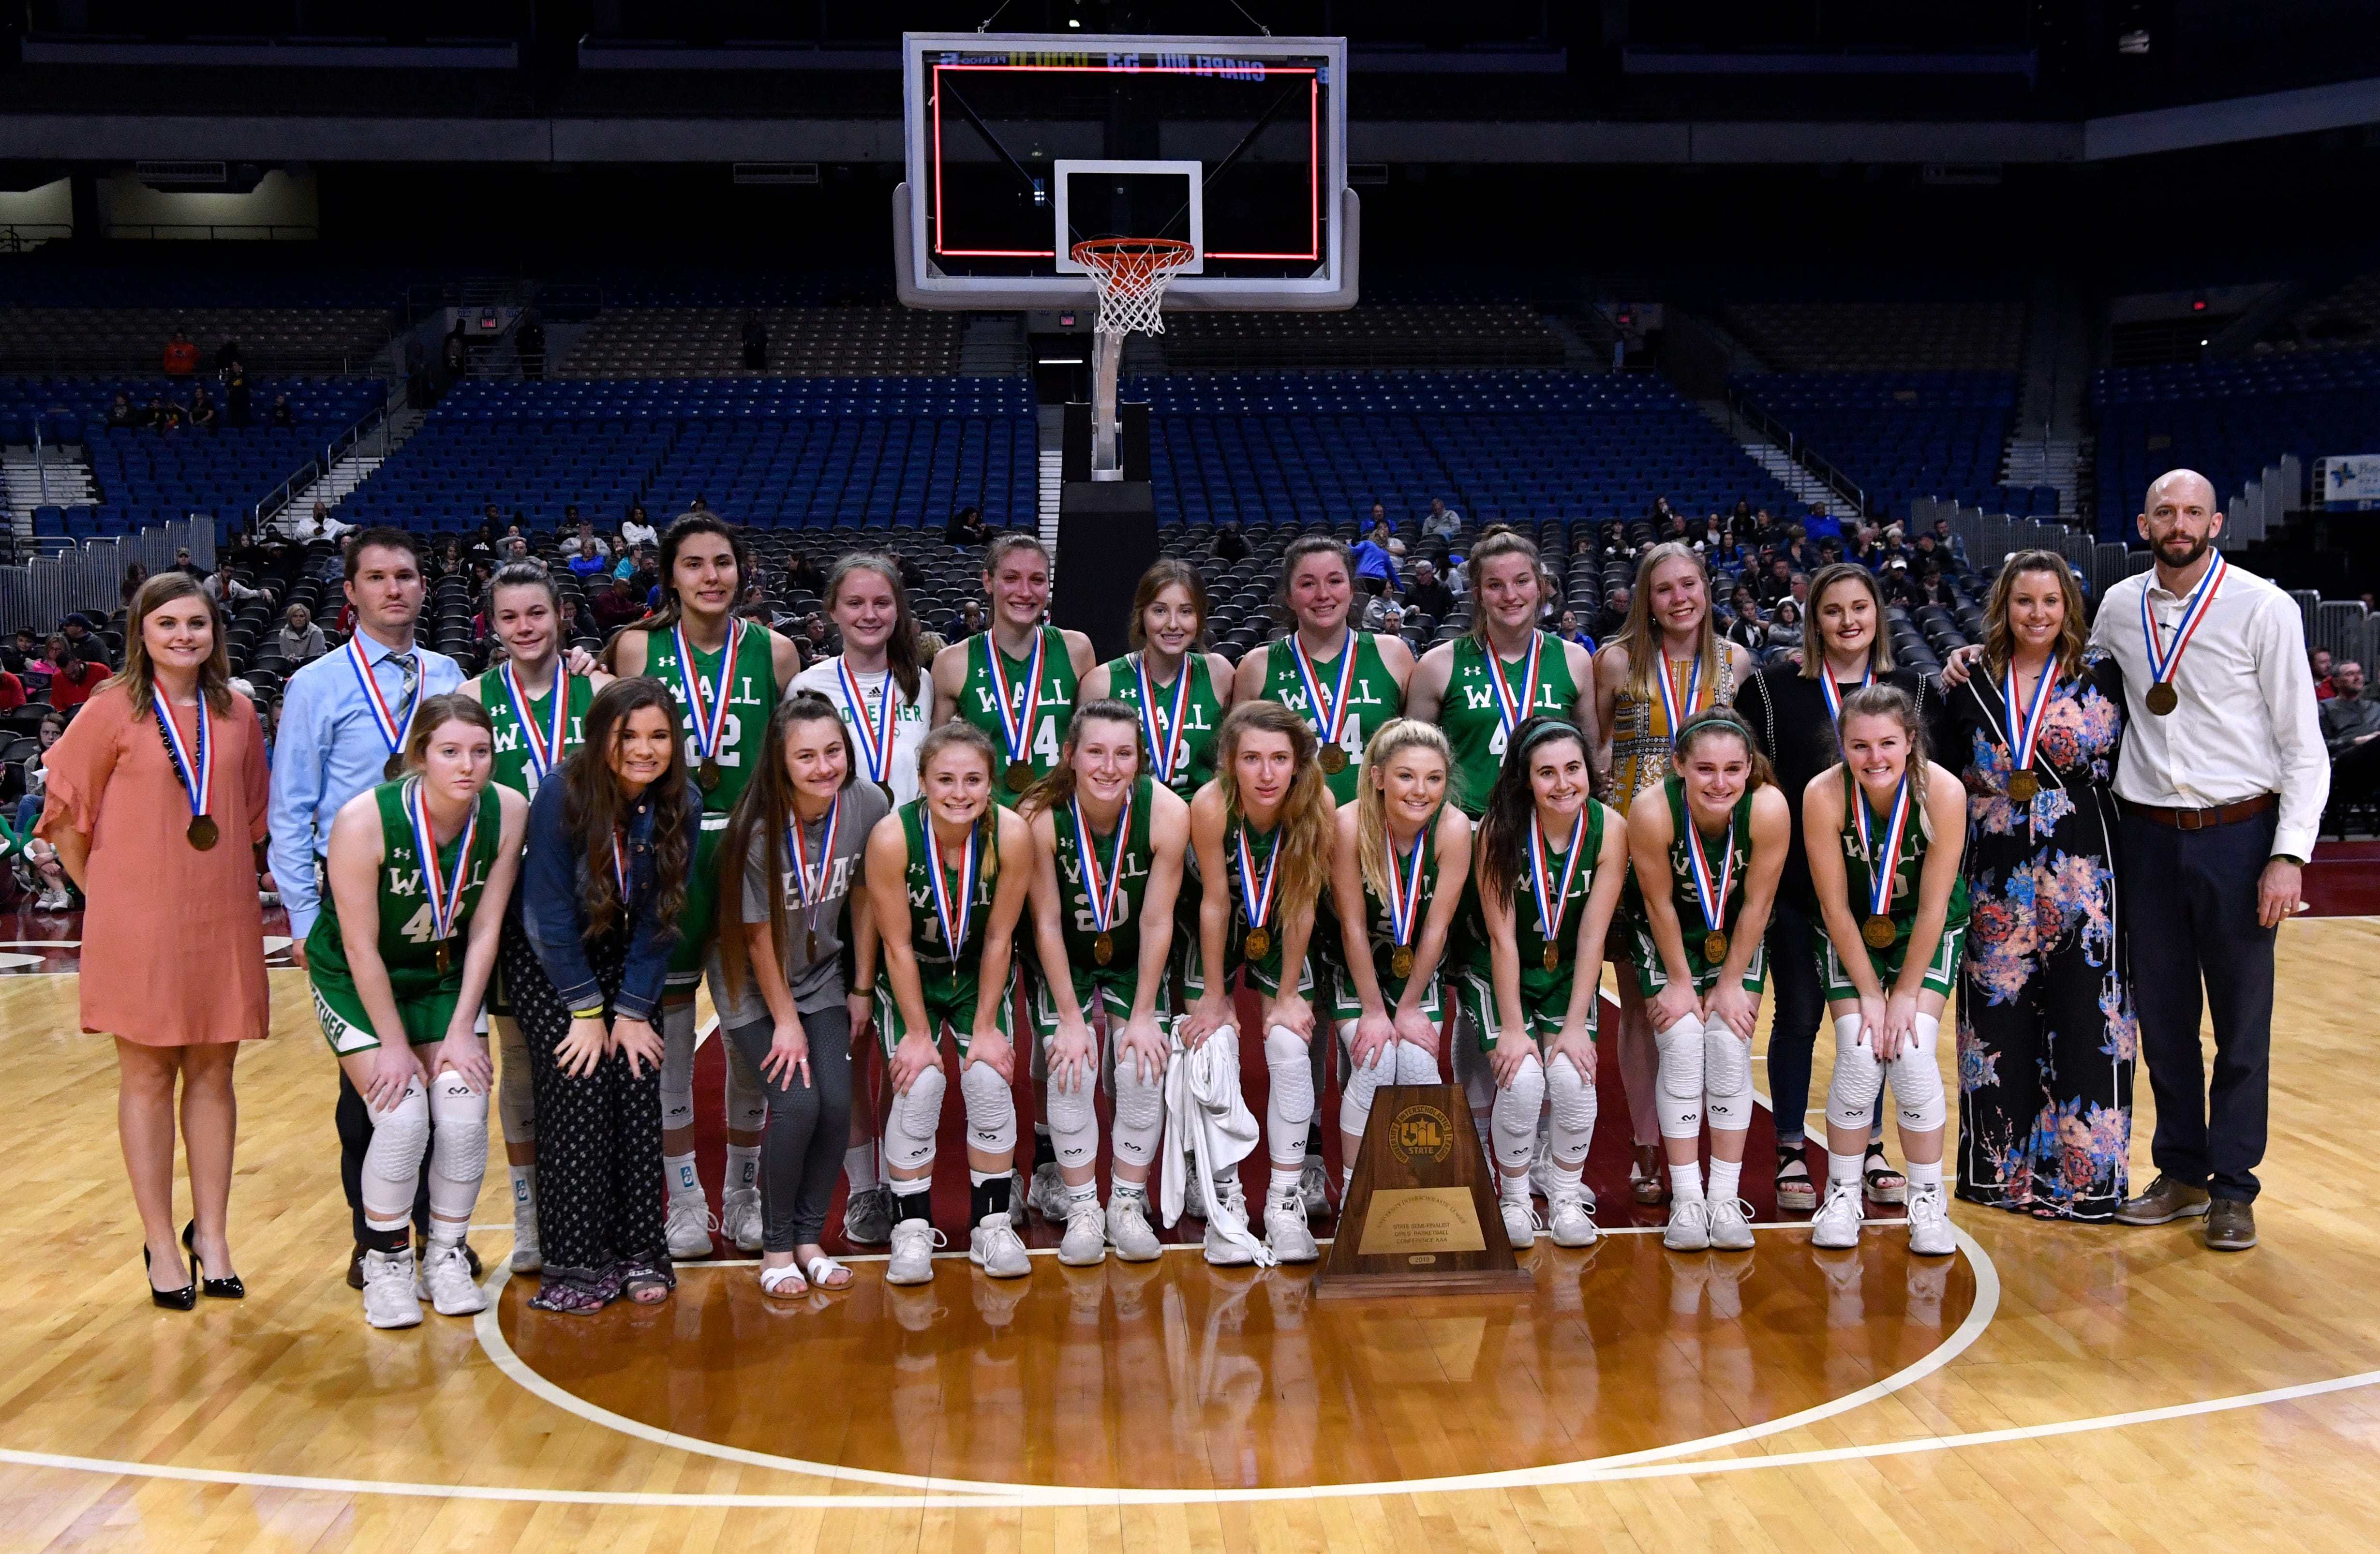 The Wall Lady Hawks pose for a team portrait with the State Semi-finalist girls basketball Class 3A trophy at the Alamodome in San Antonio Thursday Feb. 28, 2019.